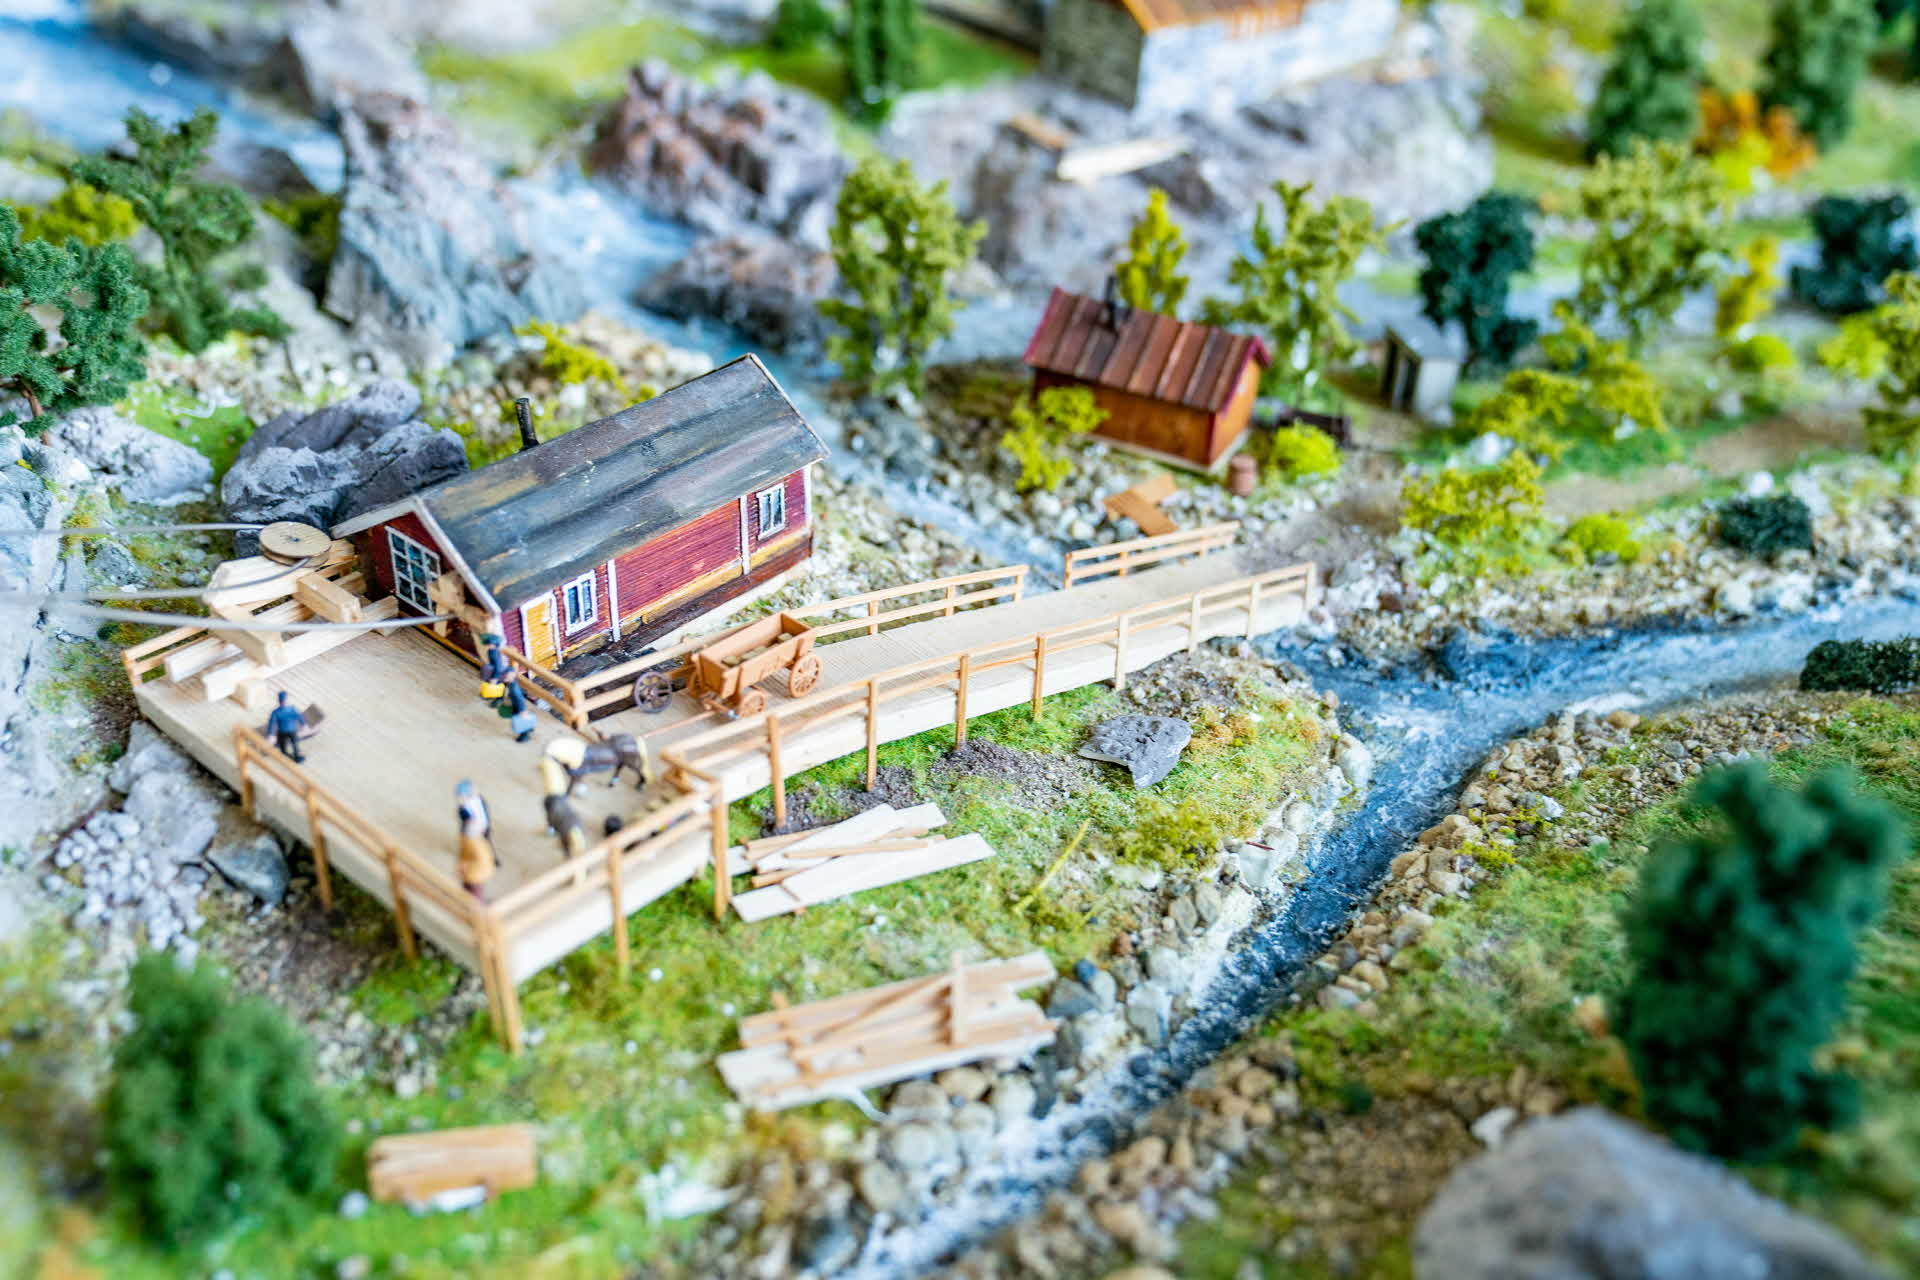 Diorama of the navvy life by the Ofot railway during its construction early 19th century